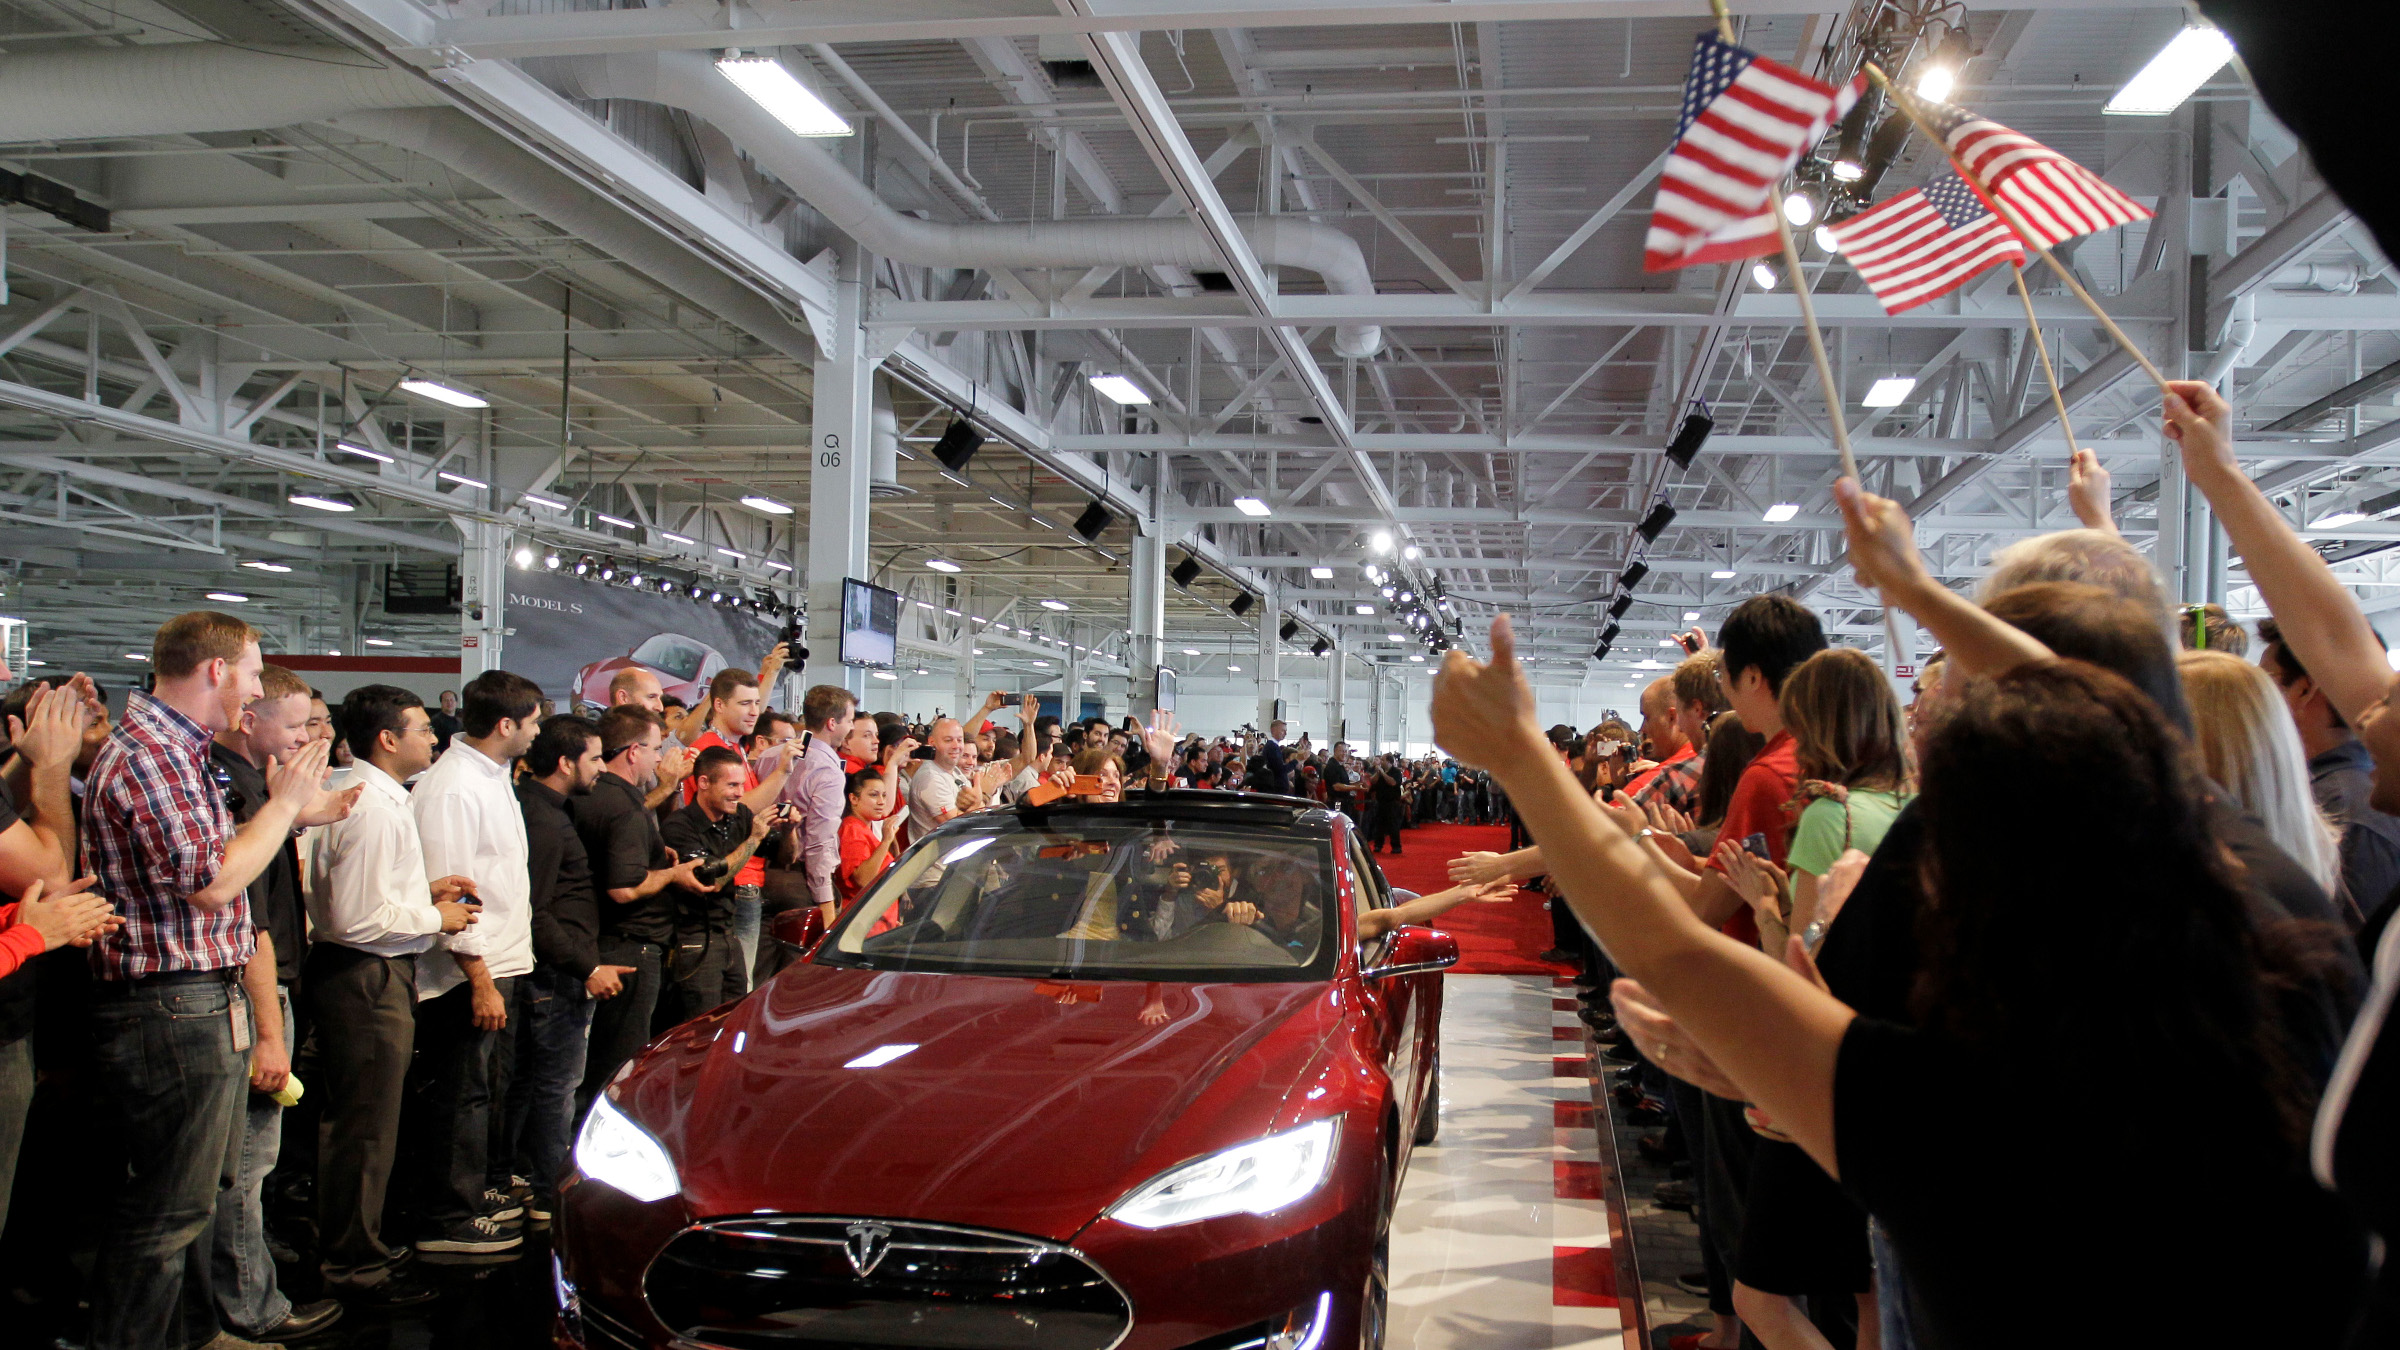 Tesla workers cheer on one the first Tesla Model S cars sold during a rally at the Tesla factory in Fremont, Calif., Friday, June 22, 2012. The first mass-market sedans offered by electric car maker Tesla are now on the road.